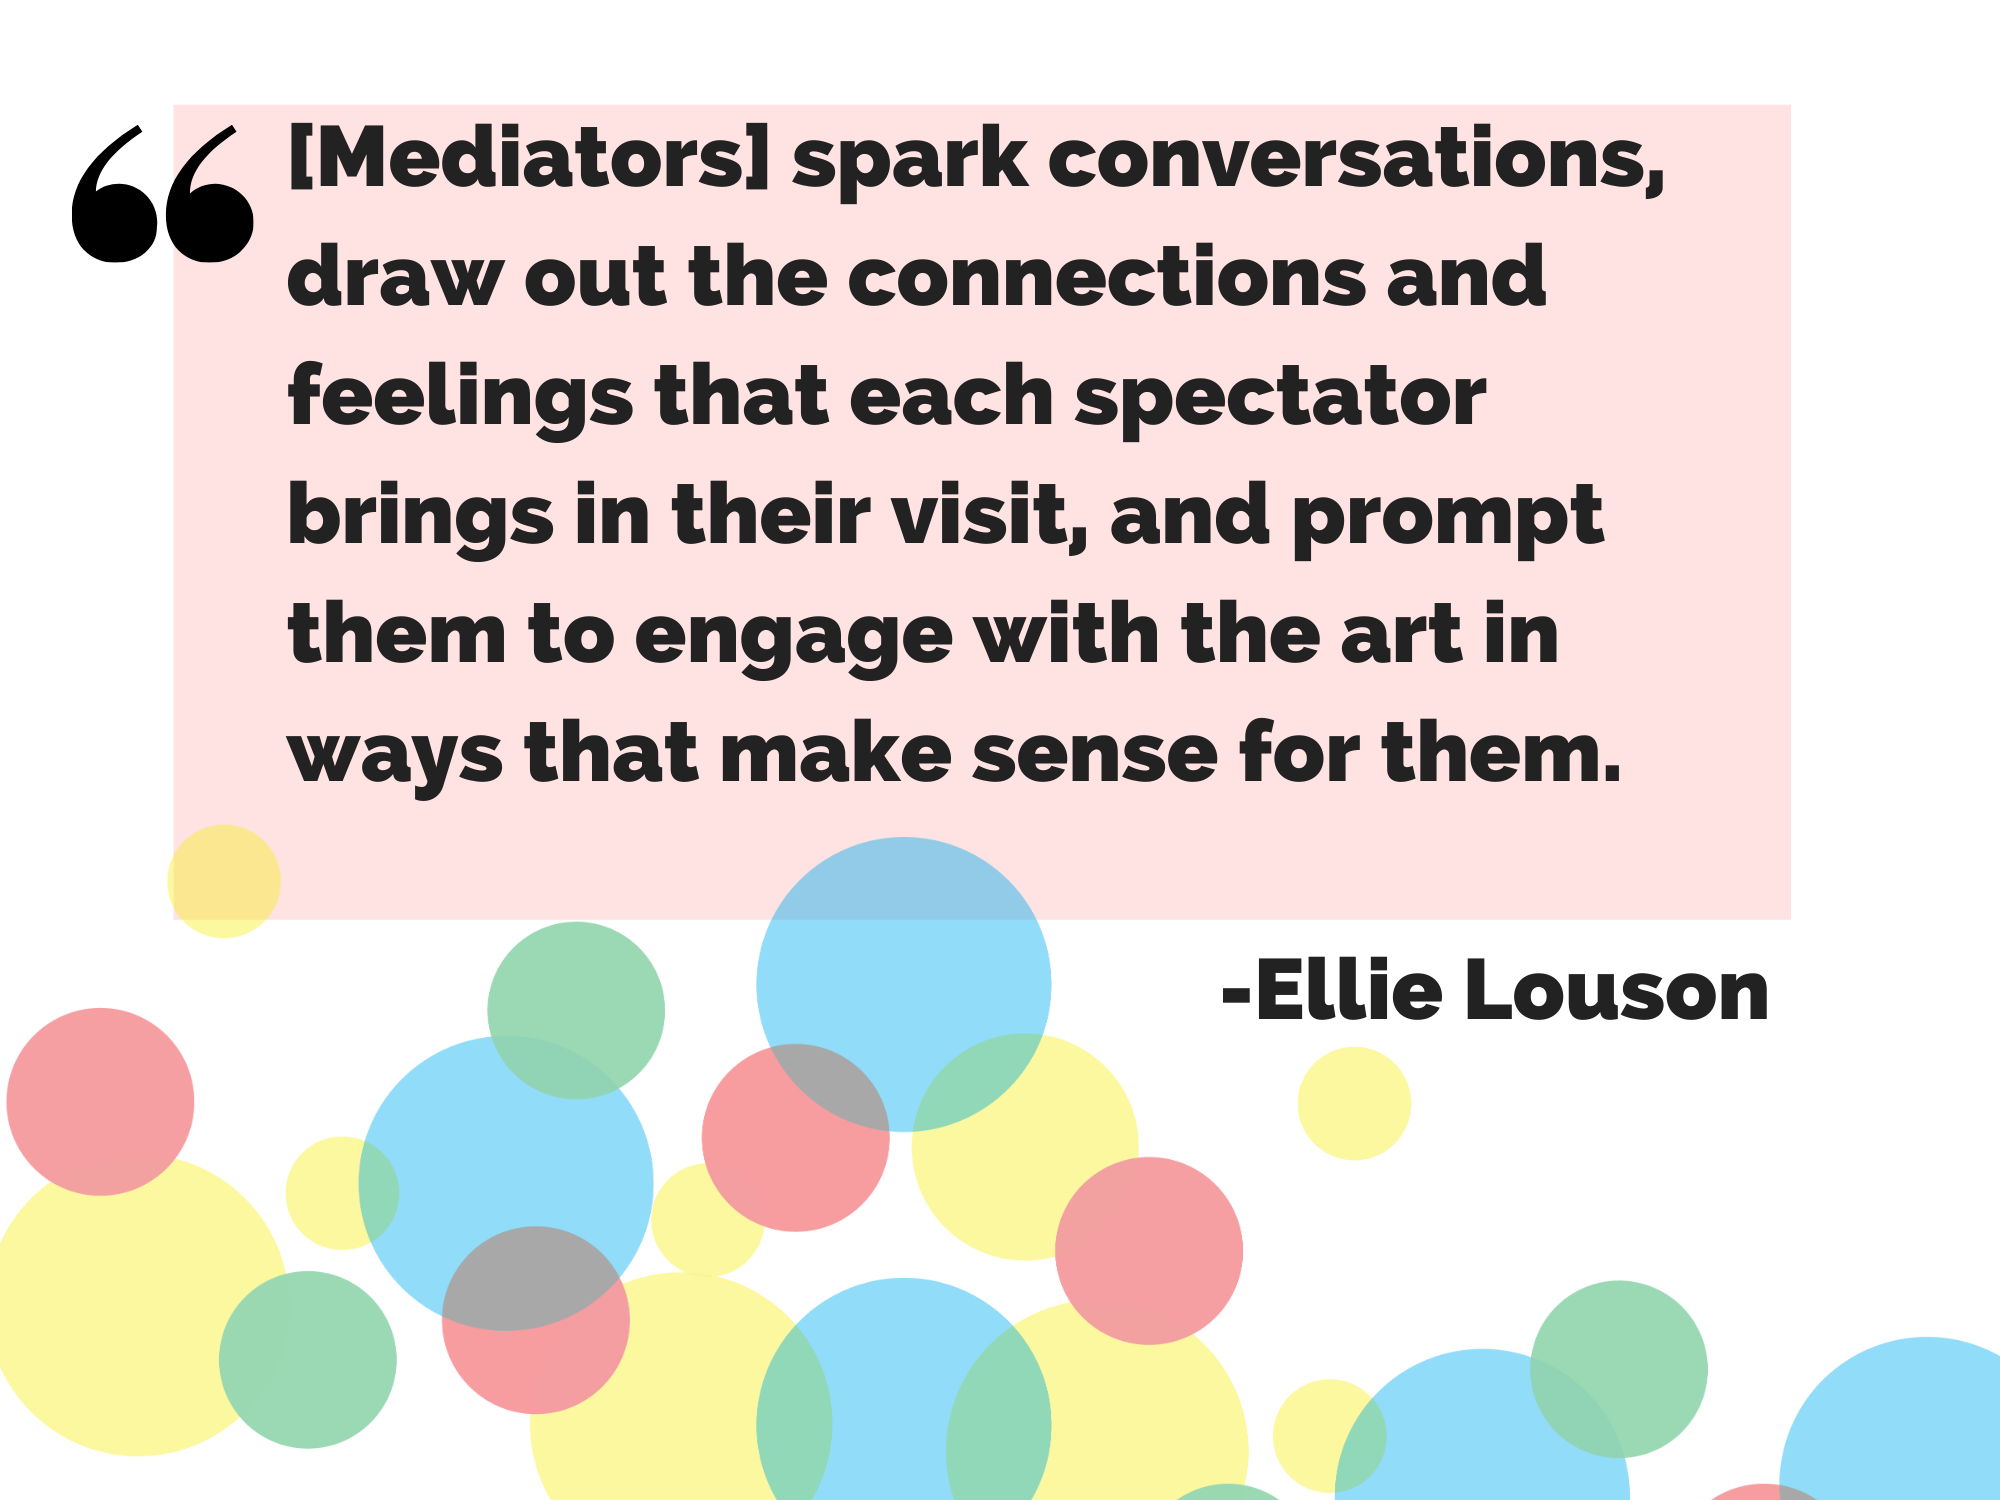 Quote Image that says: Mediators spark conversations, draw out the connections and feelings that each spectator brings in their visit, and prompt them to engage with the art in ways that make sense for them.